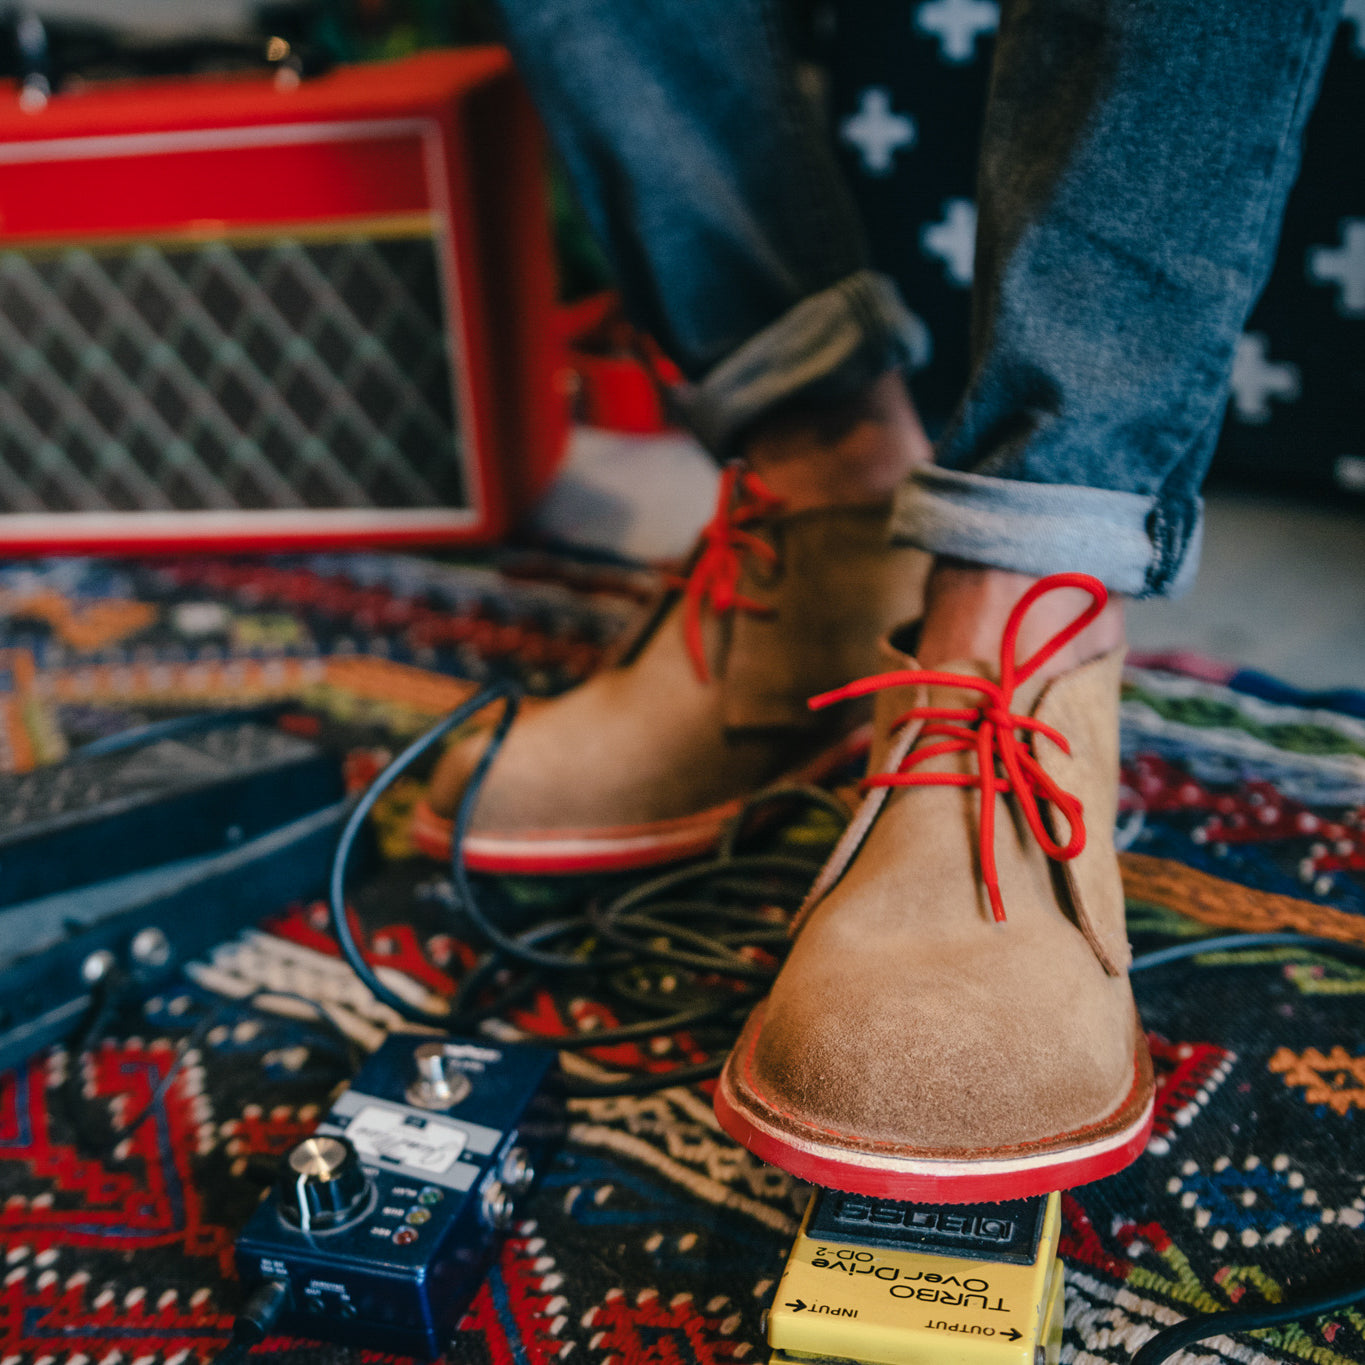 Veldskoen shoes and boots or known as vellies heritage boot ethically and sustainably handcrafted in South Africa sold in united states man weraing red laced suede heritage and playing guitar